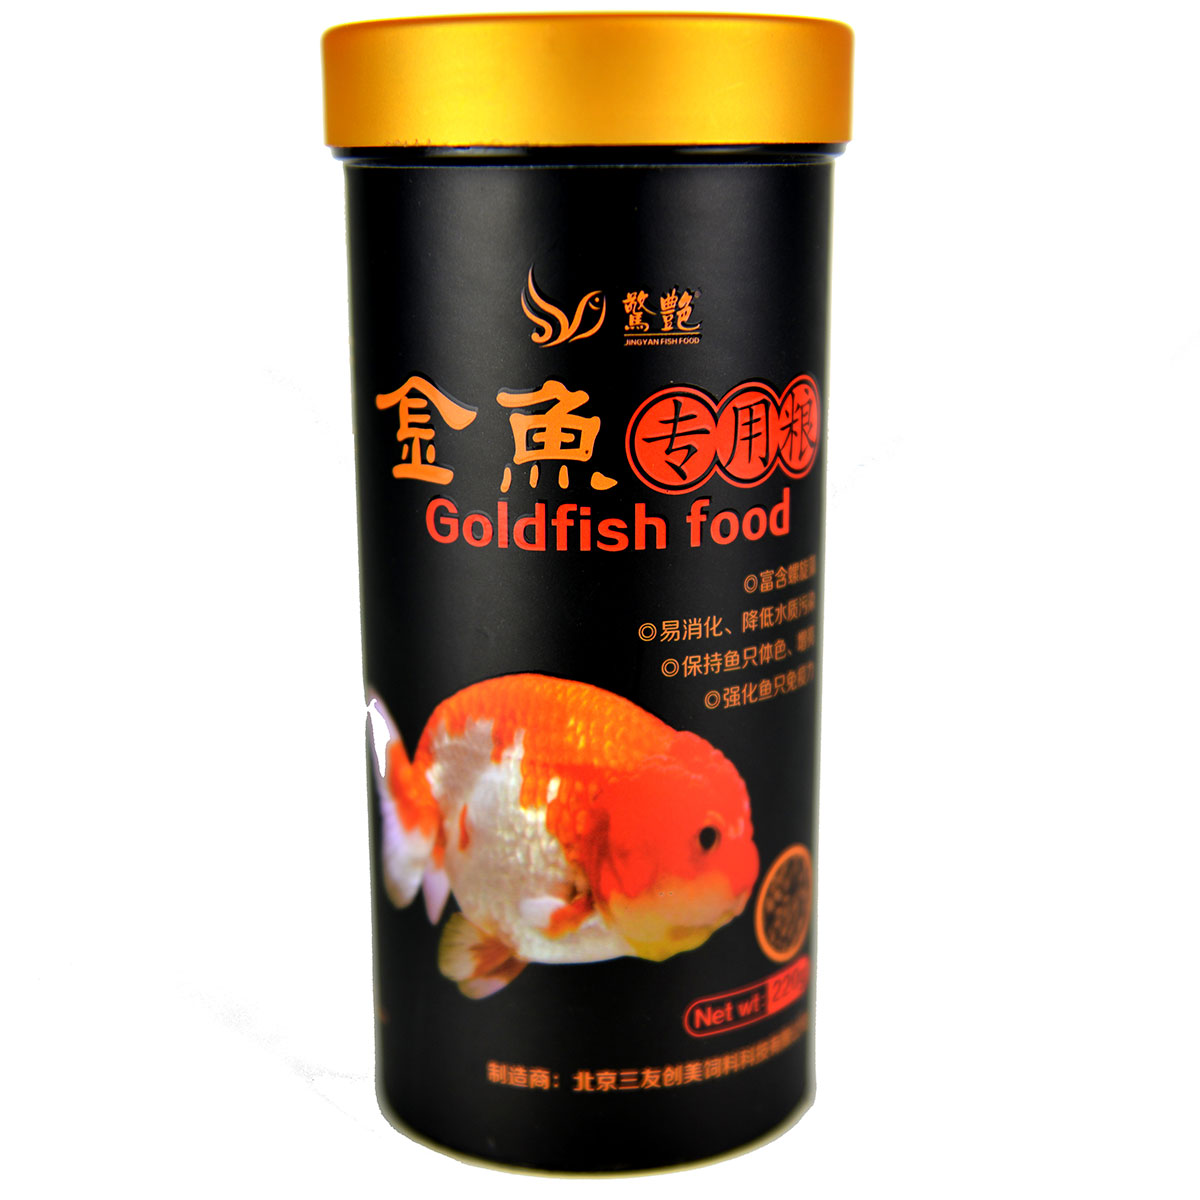 Friends of a us feed goldfish koi food brightening brightening ornamental fish feed fish food spirulina protein particles japan